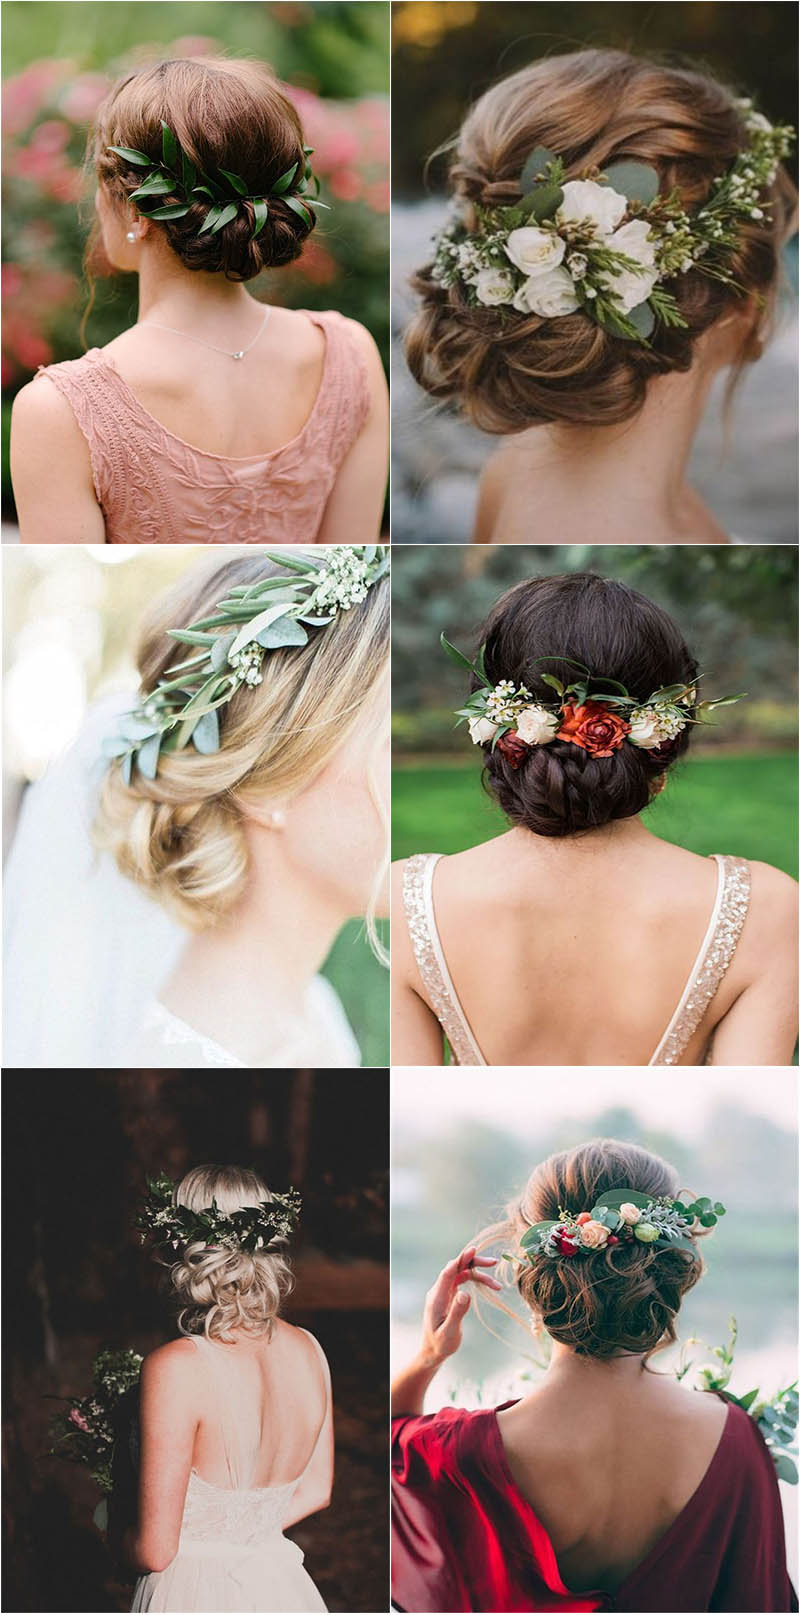 one of a kind greenery wedding hairstyle decor